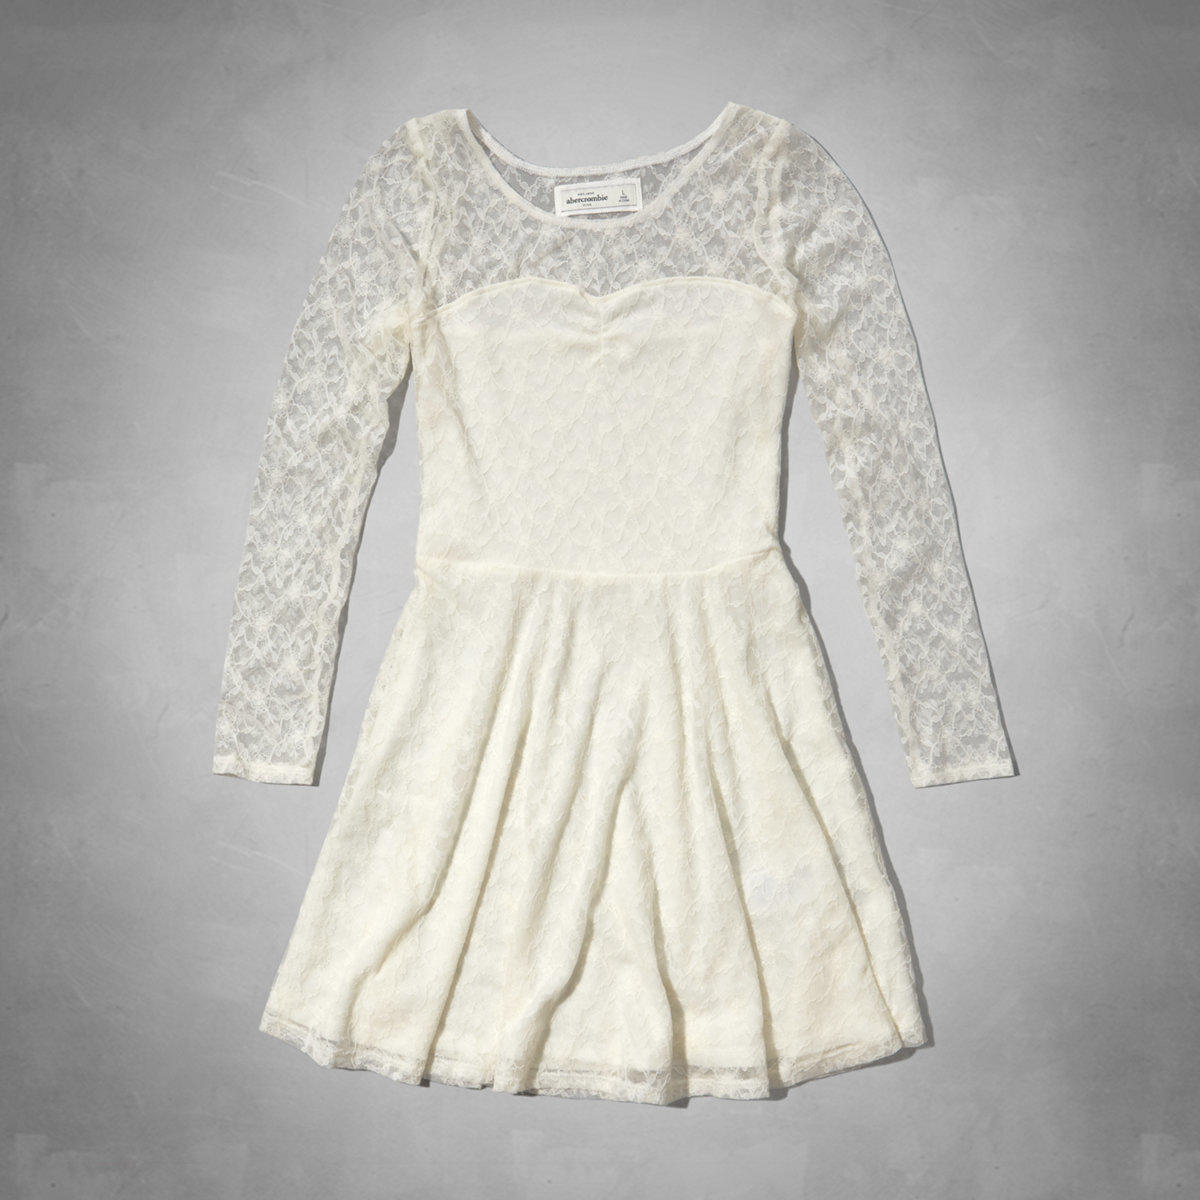 Christmas dresses 3 months - Long Sleeve Lace Skater Dress From Abercrombie Kids